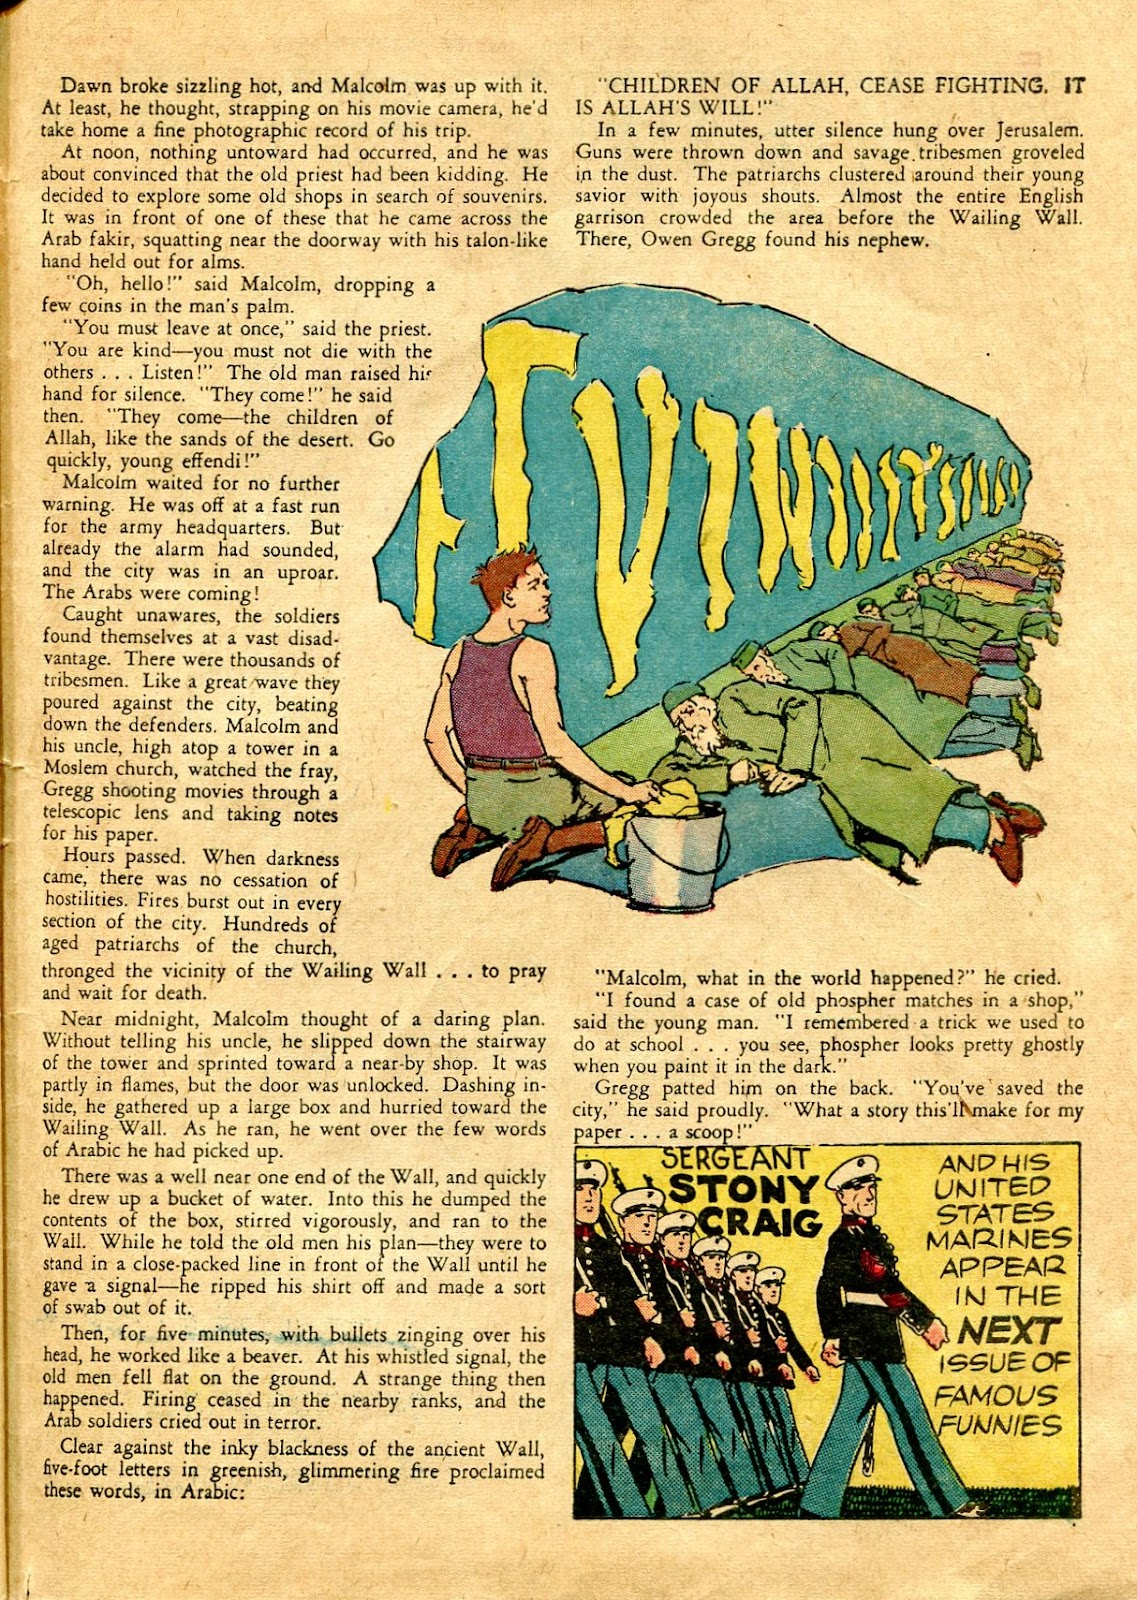 Read online Famous Funnies comic -  Issue #64 - 60